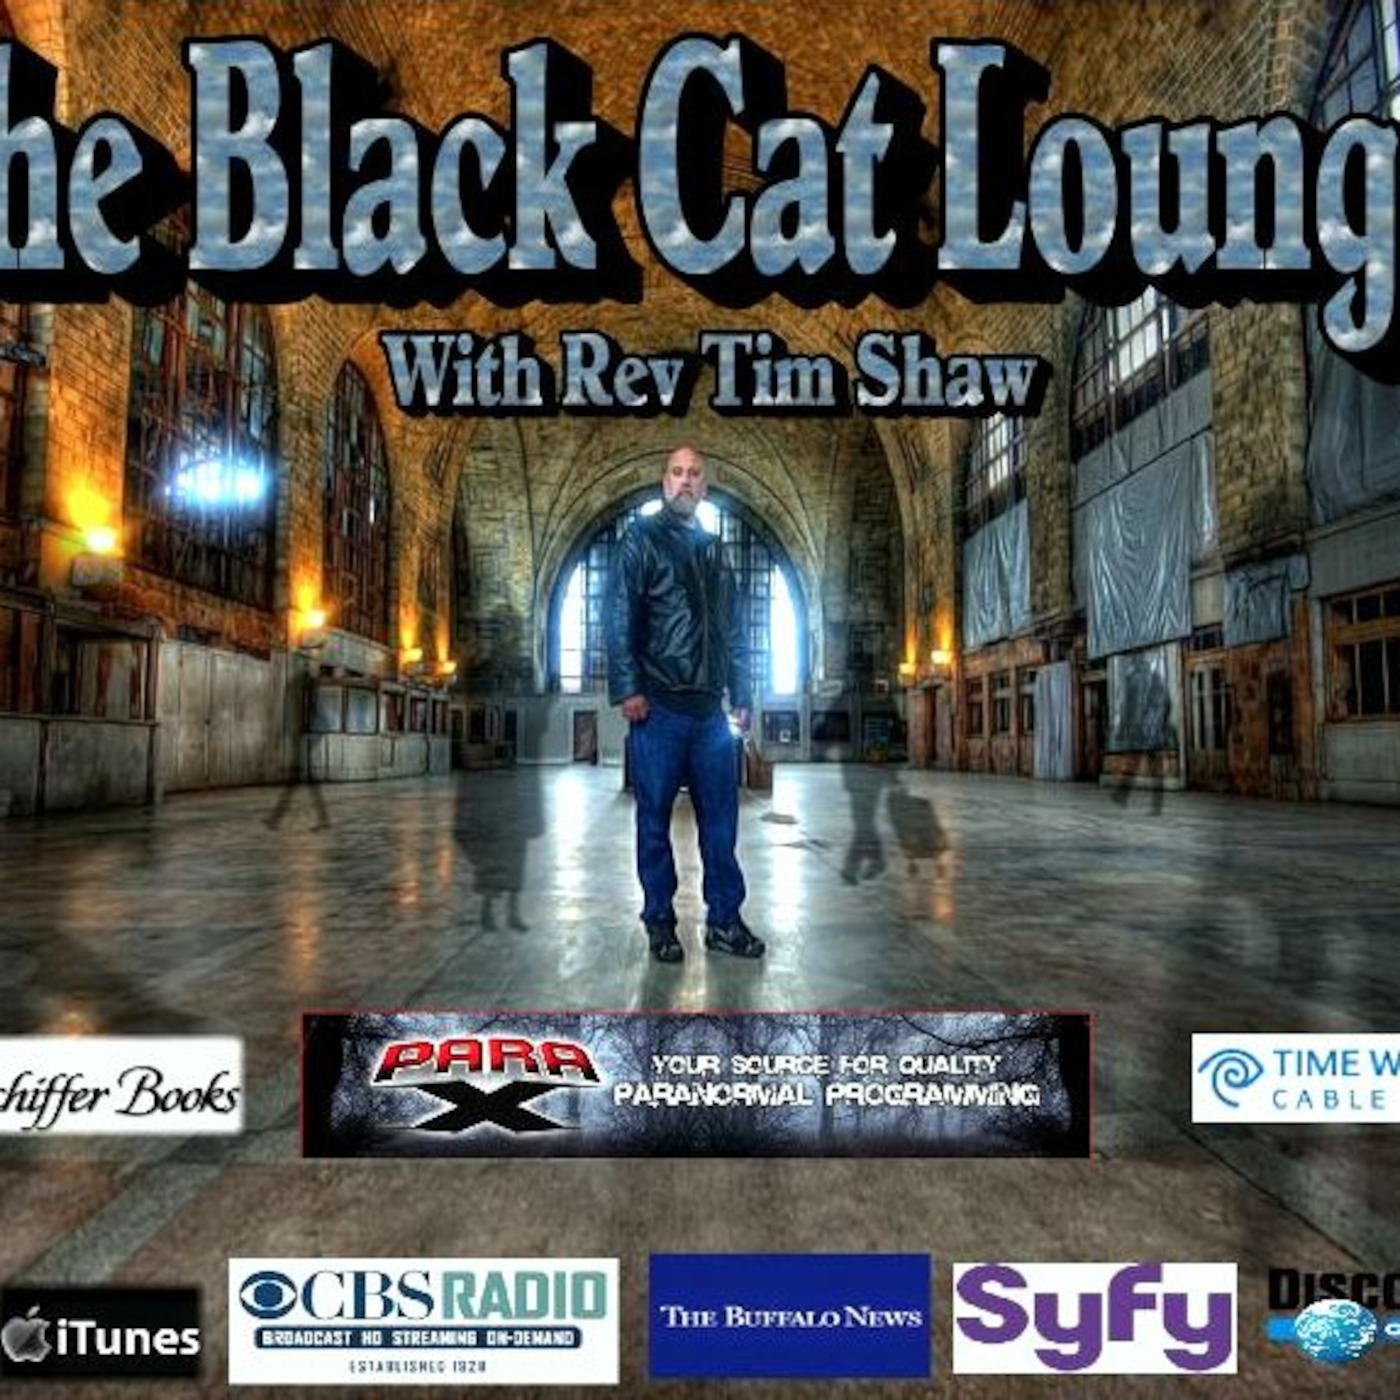 Black Cat Lounge's Podcast